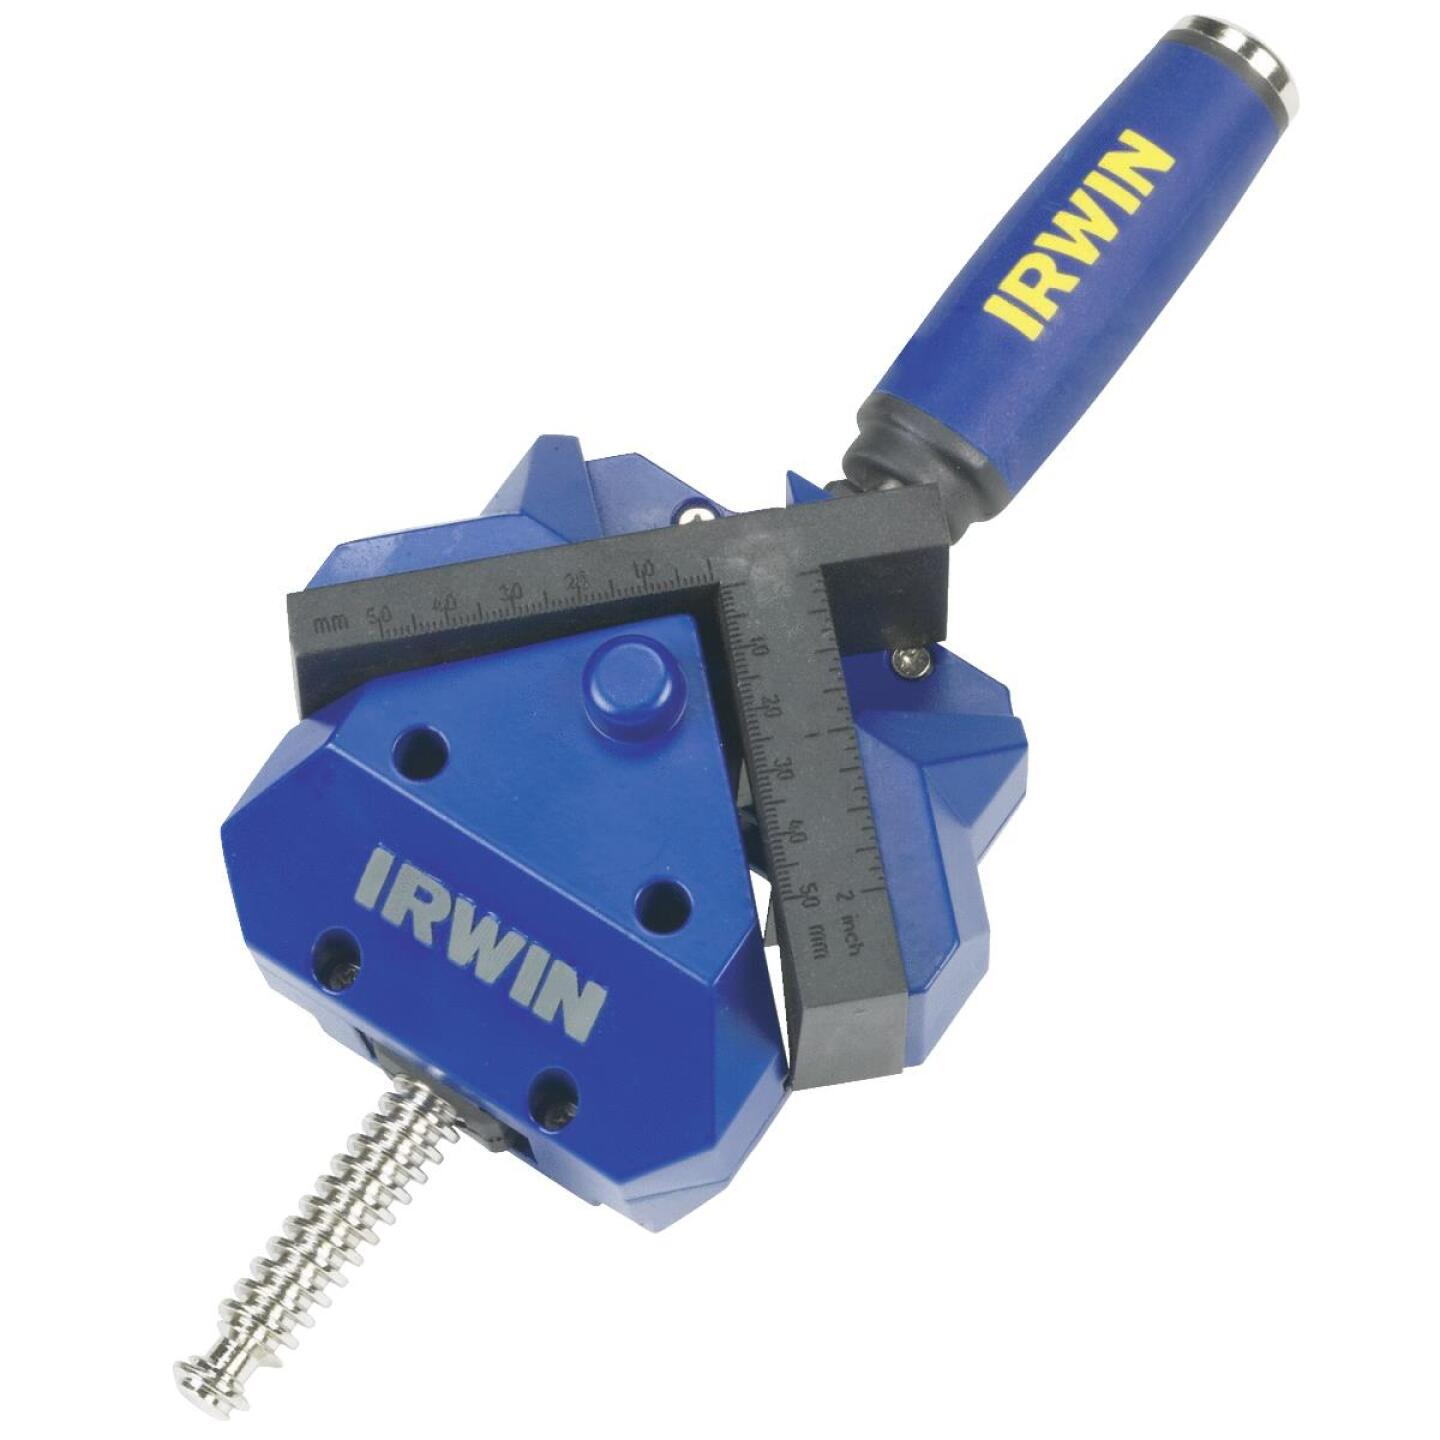 Irwin 3 In. 90 Degree Angle Clamp Image 3